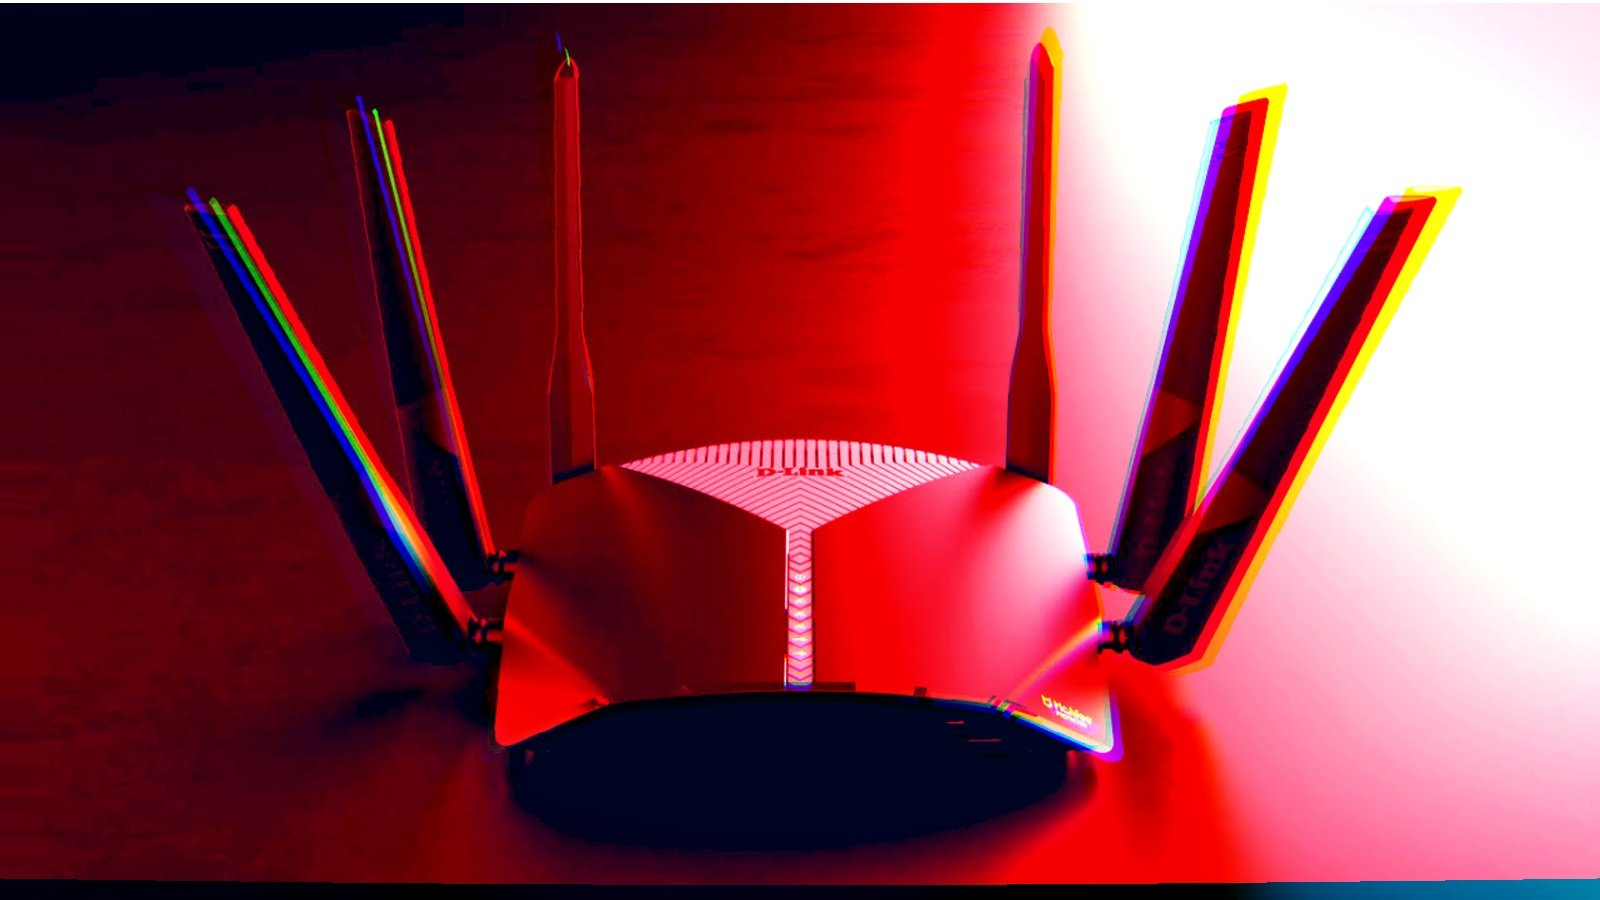 D-Link issues hotfix for hard-coded password router vulnerabilities